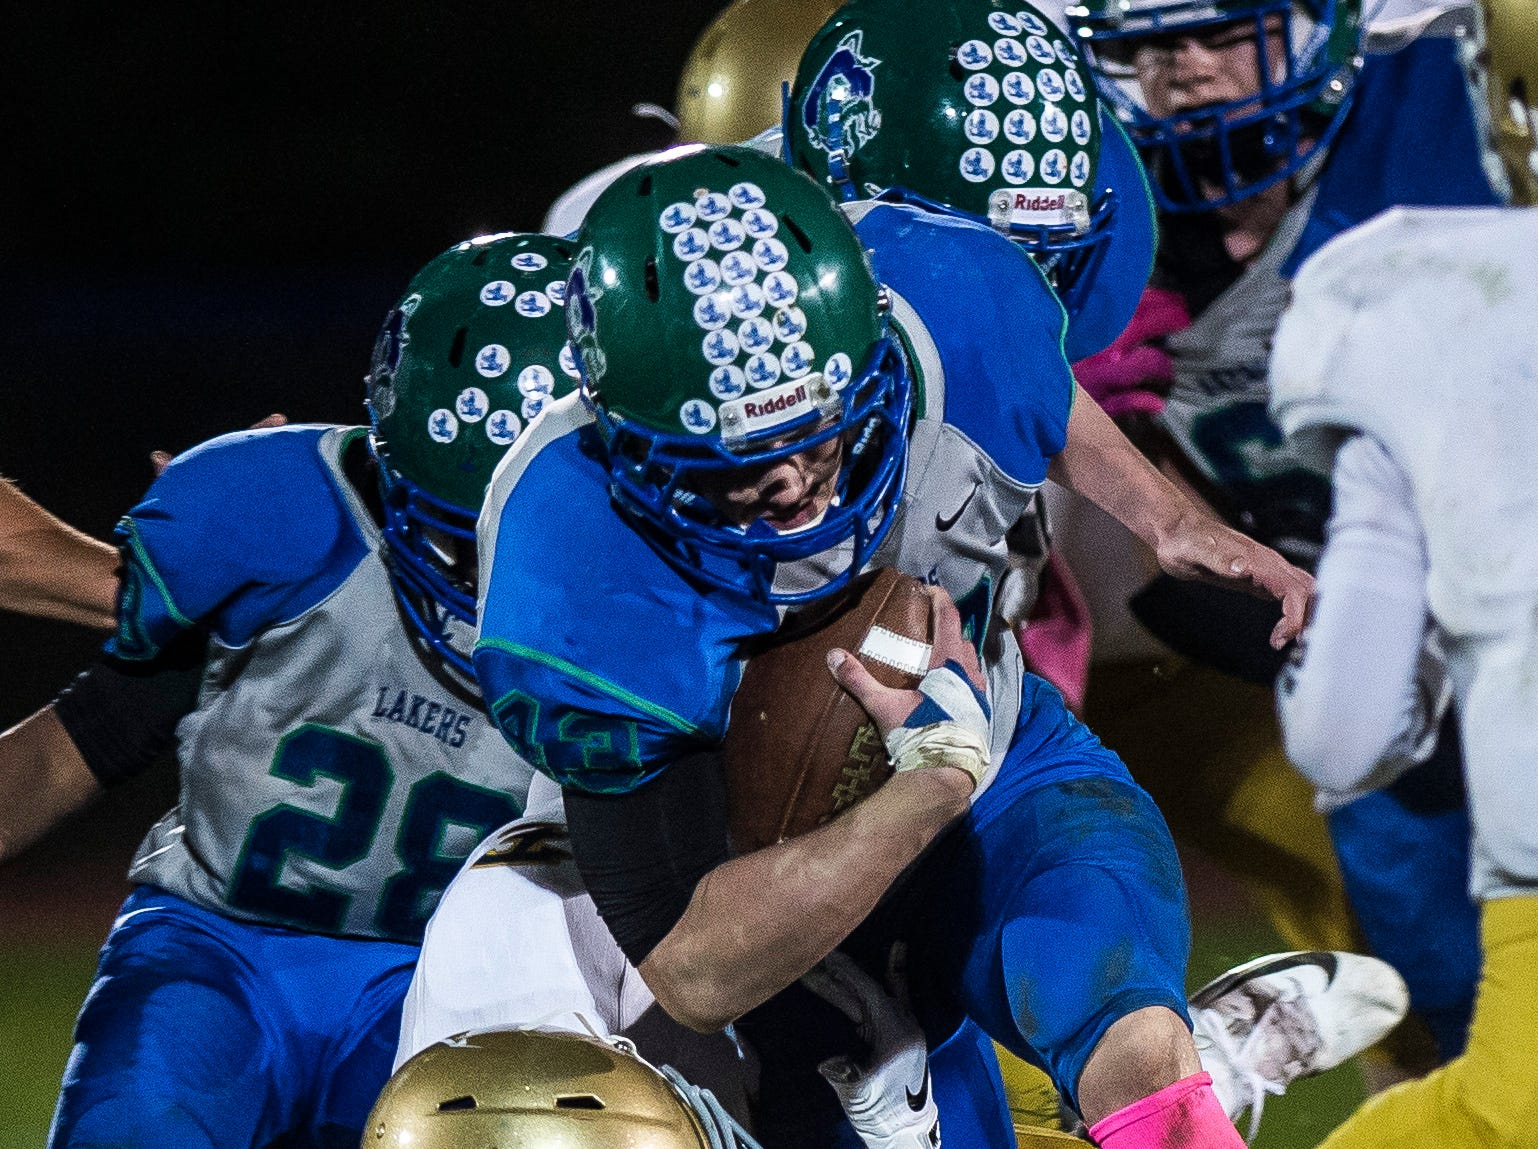 Colchester #43  Max Anderson tries to push through the Essex defense during their football game against Essex Friday night, Oct. 5, 2018, at Colchester High School. The Lakers won, 28-7.